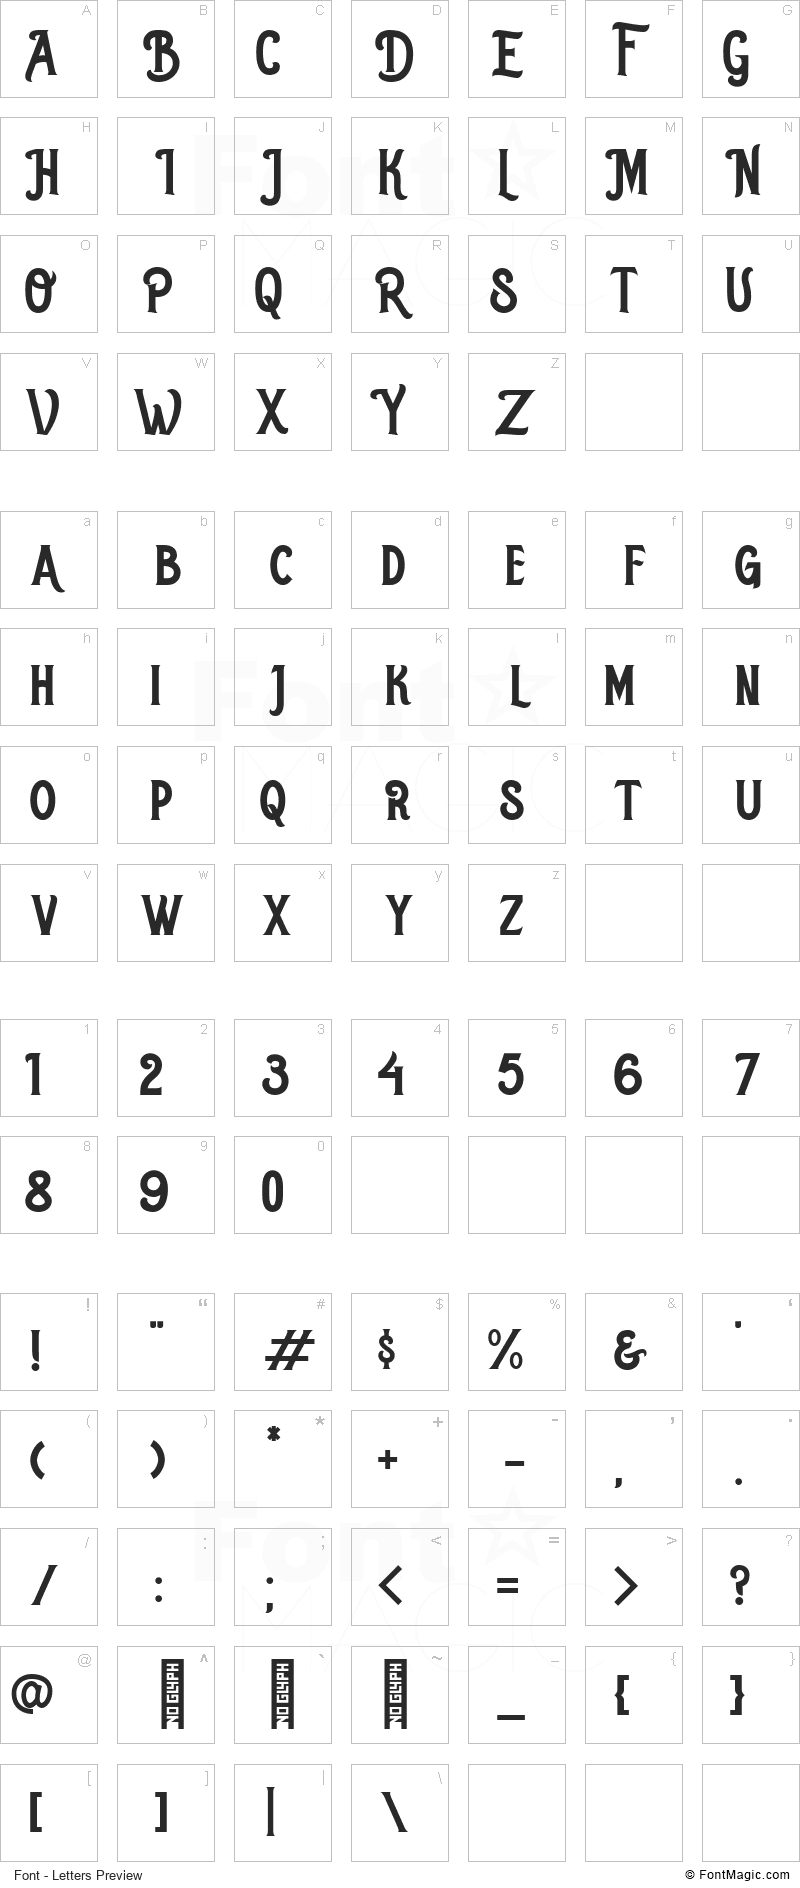 Robusta Font - All Latters Preview Chart